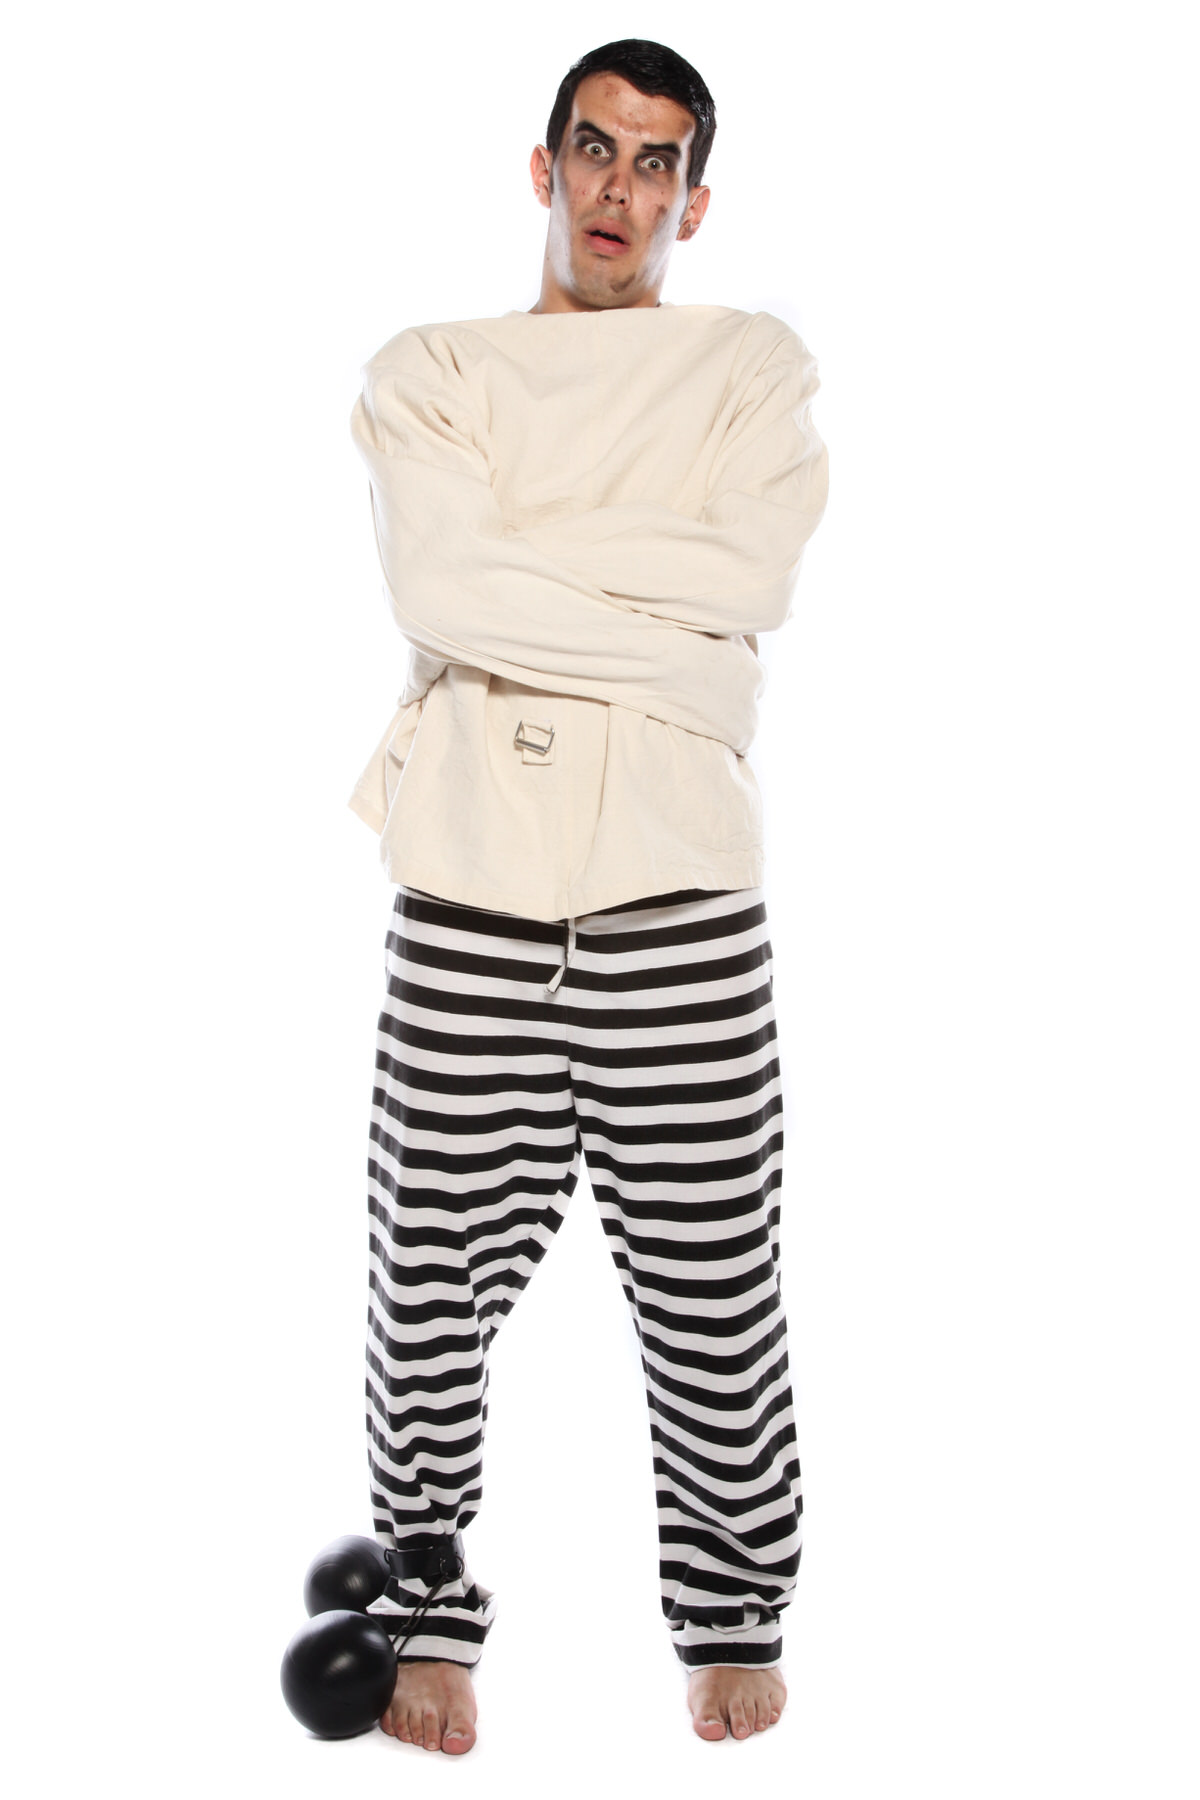 STRAIGHT JACKET PSYCHOPATH COSTUME W BALL AND CHAIN